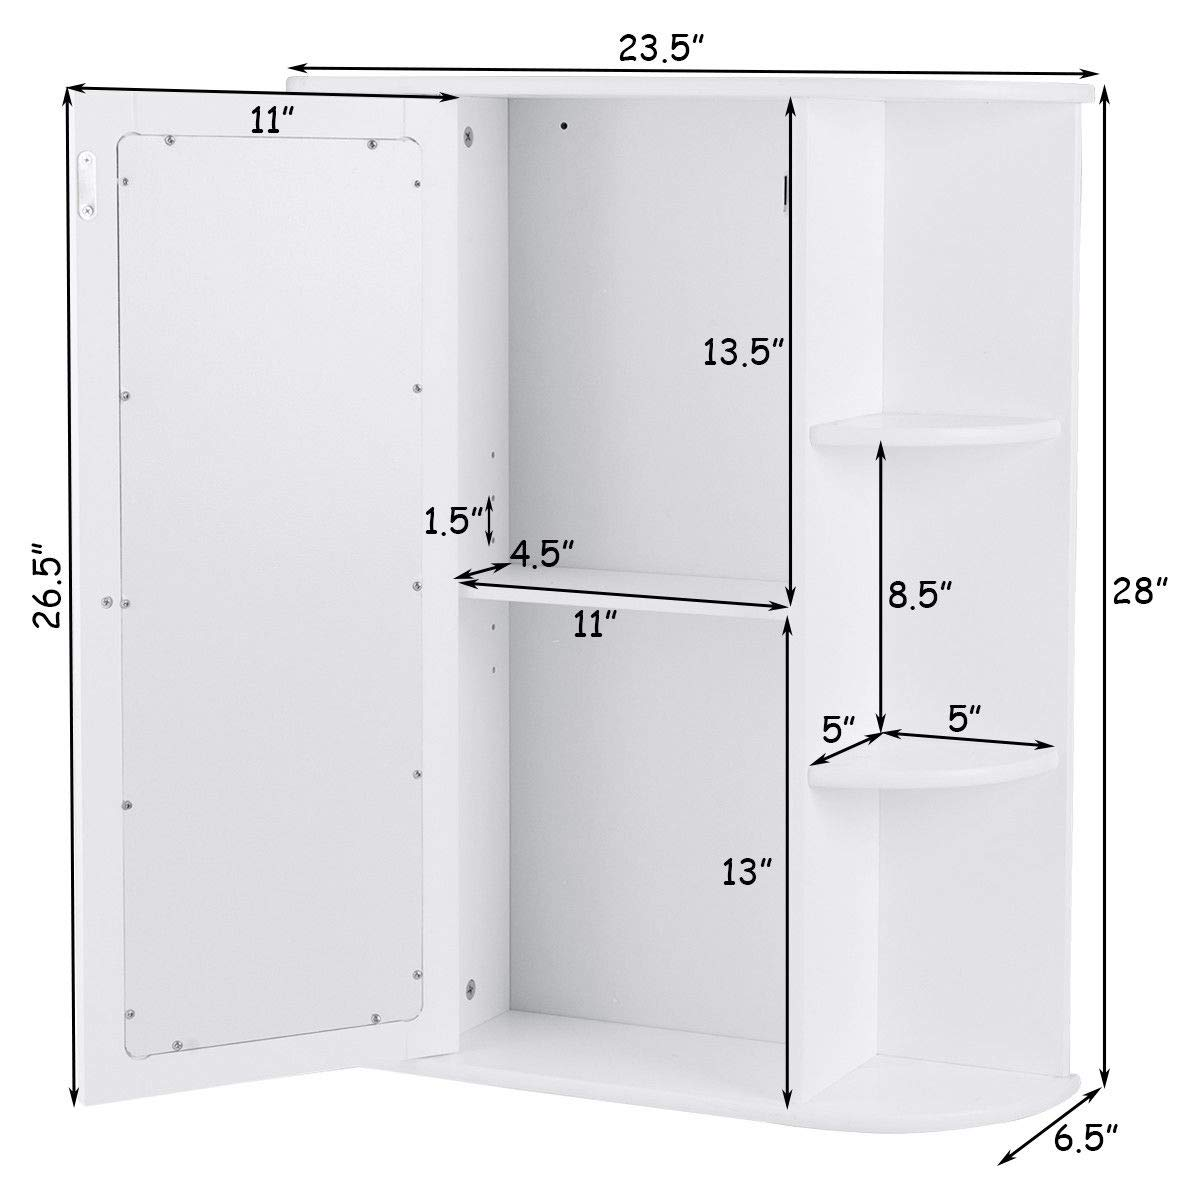 TANGKULA Bathroom Cabinet Single Door Wall Mount with Mirror Organizer Storage Cabinet(2 Tier Inner Shelves) by TANGKULA (Image #3)